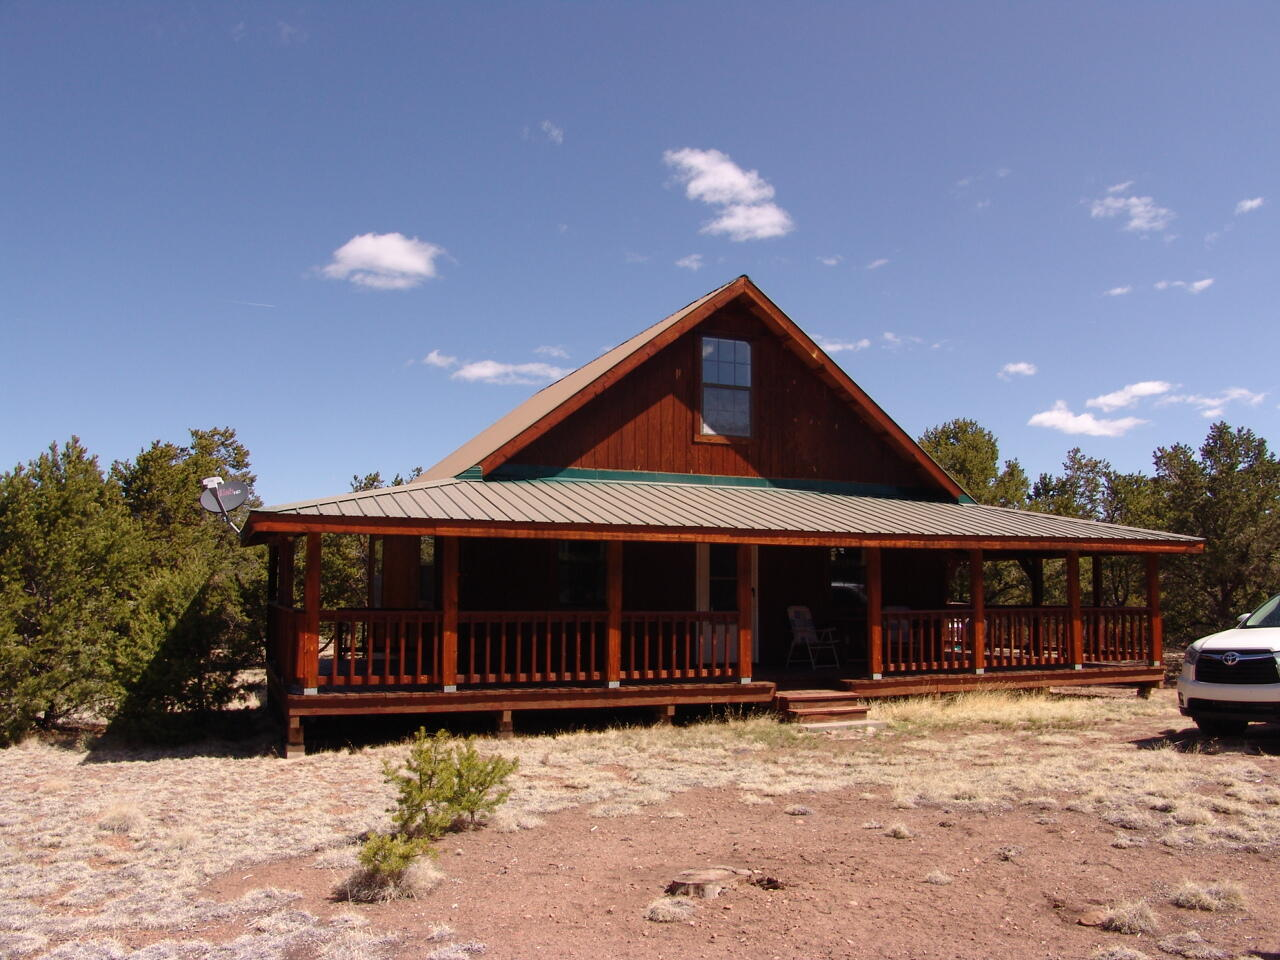 47 HORSE PEAK Trail #IV Property Photo - Datil, NM real estate listing